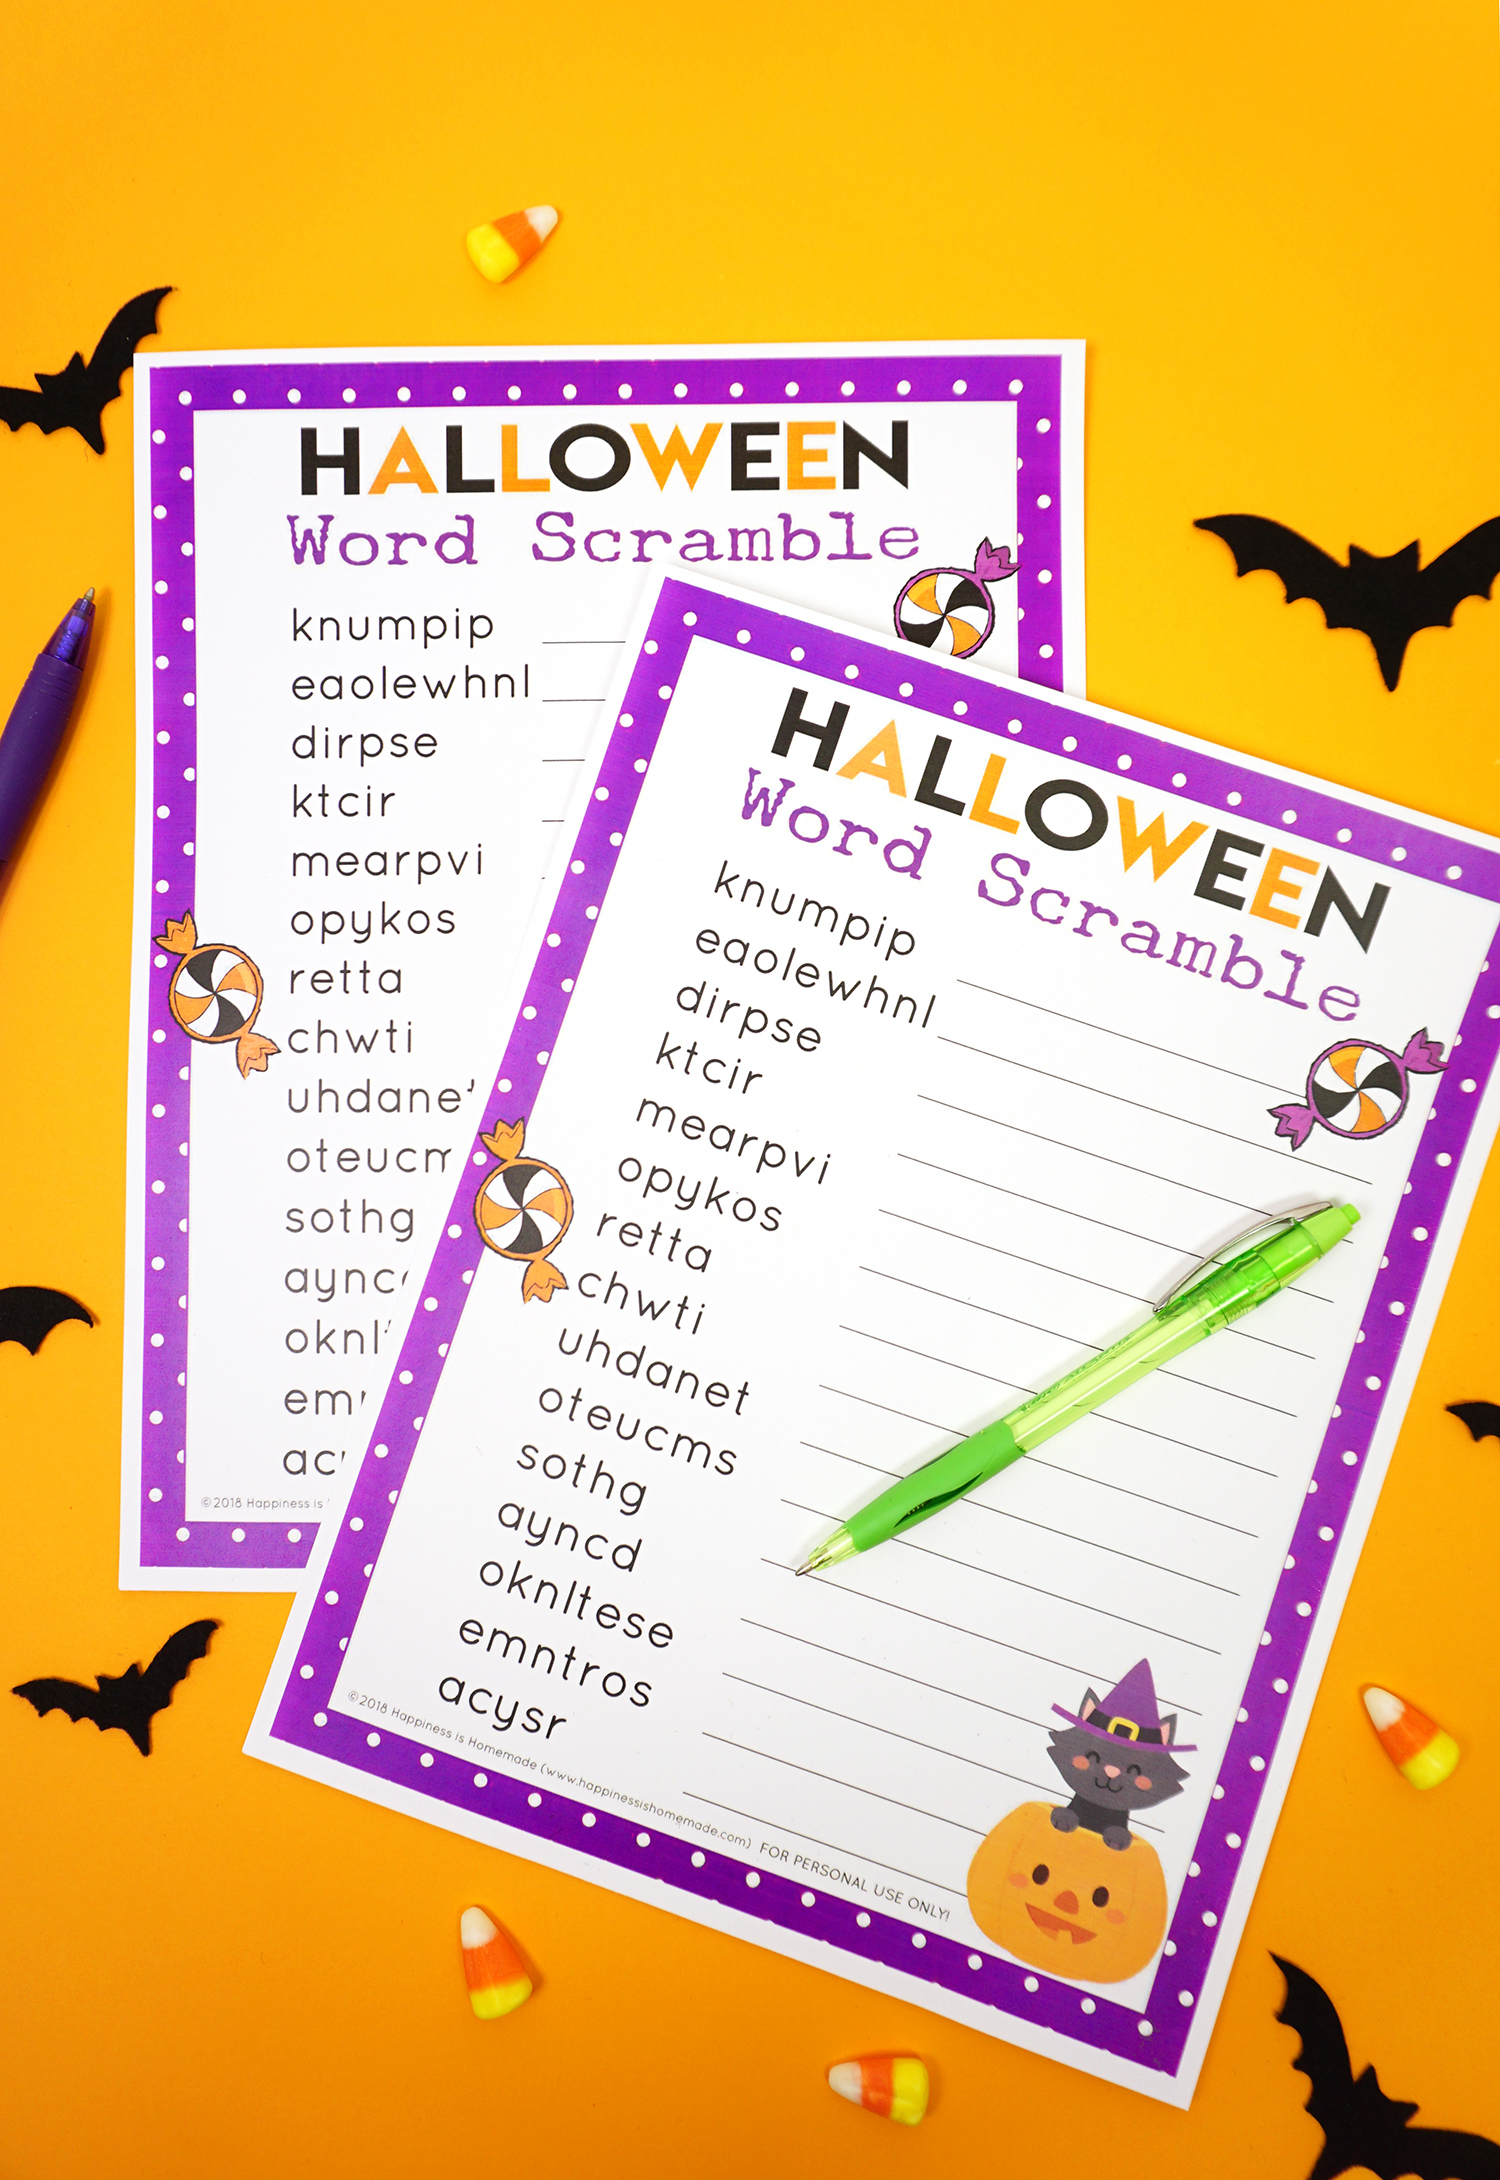 Halloween Word Scramble For Kids